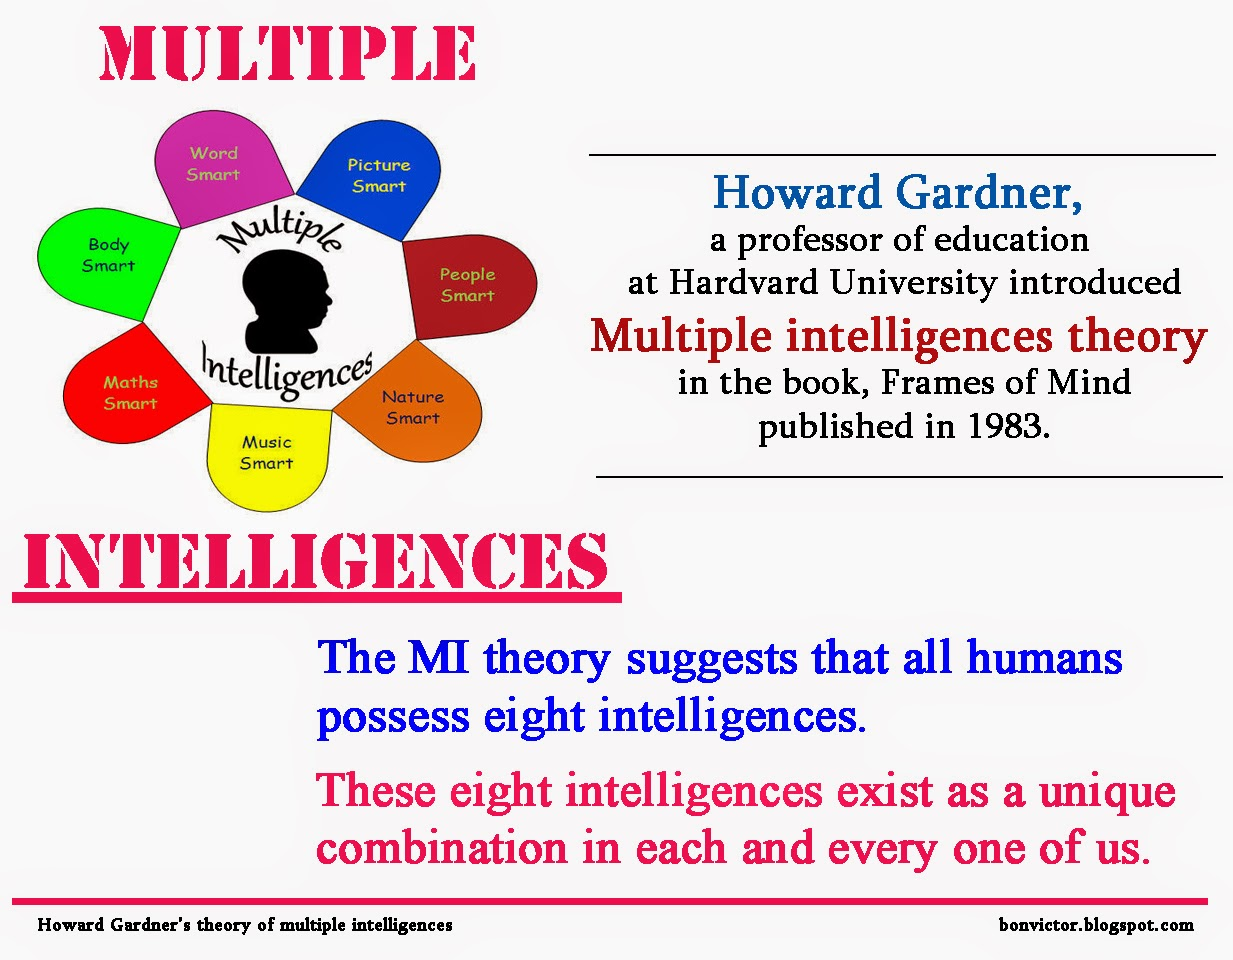 A Study on Gardners theories on Intelligence